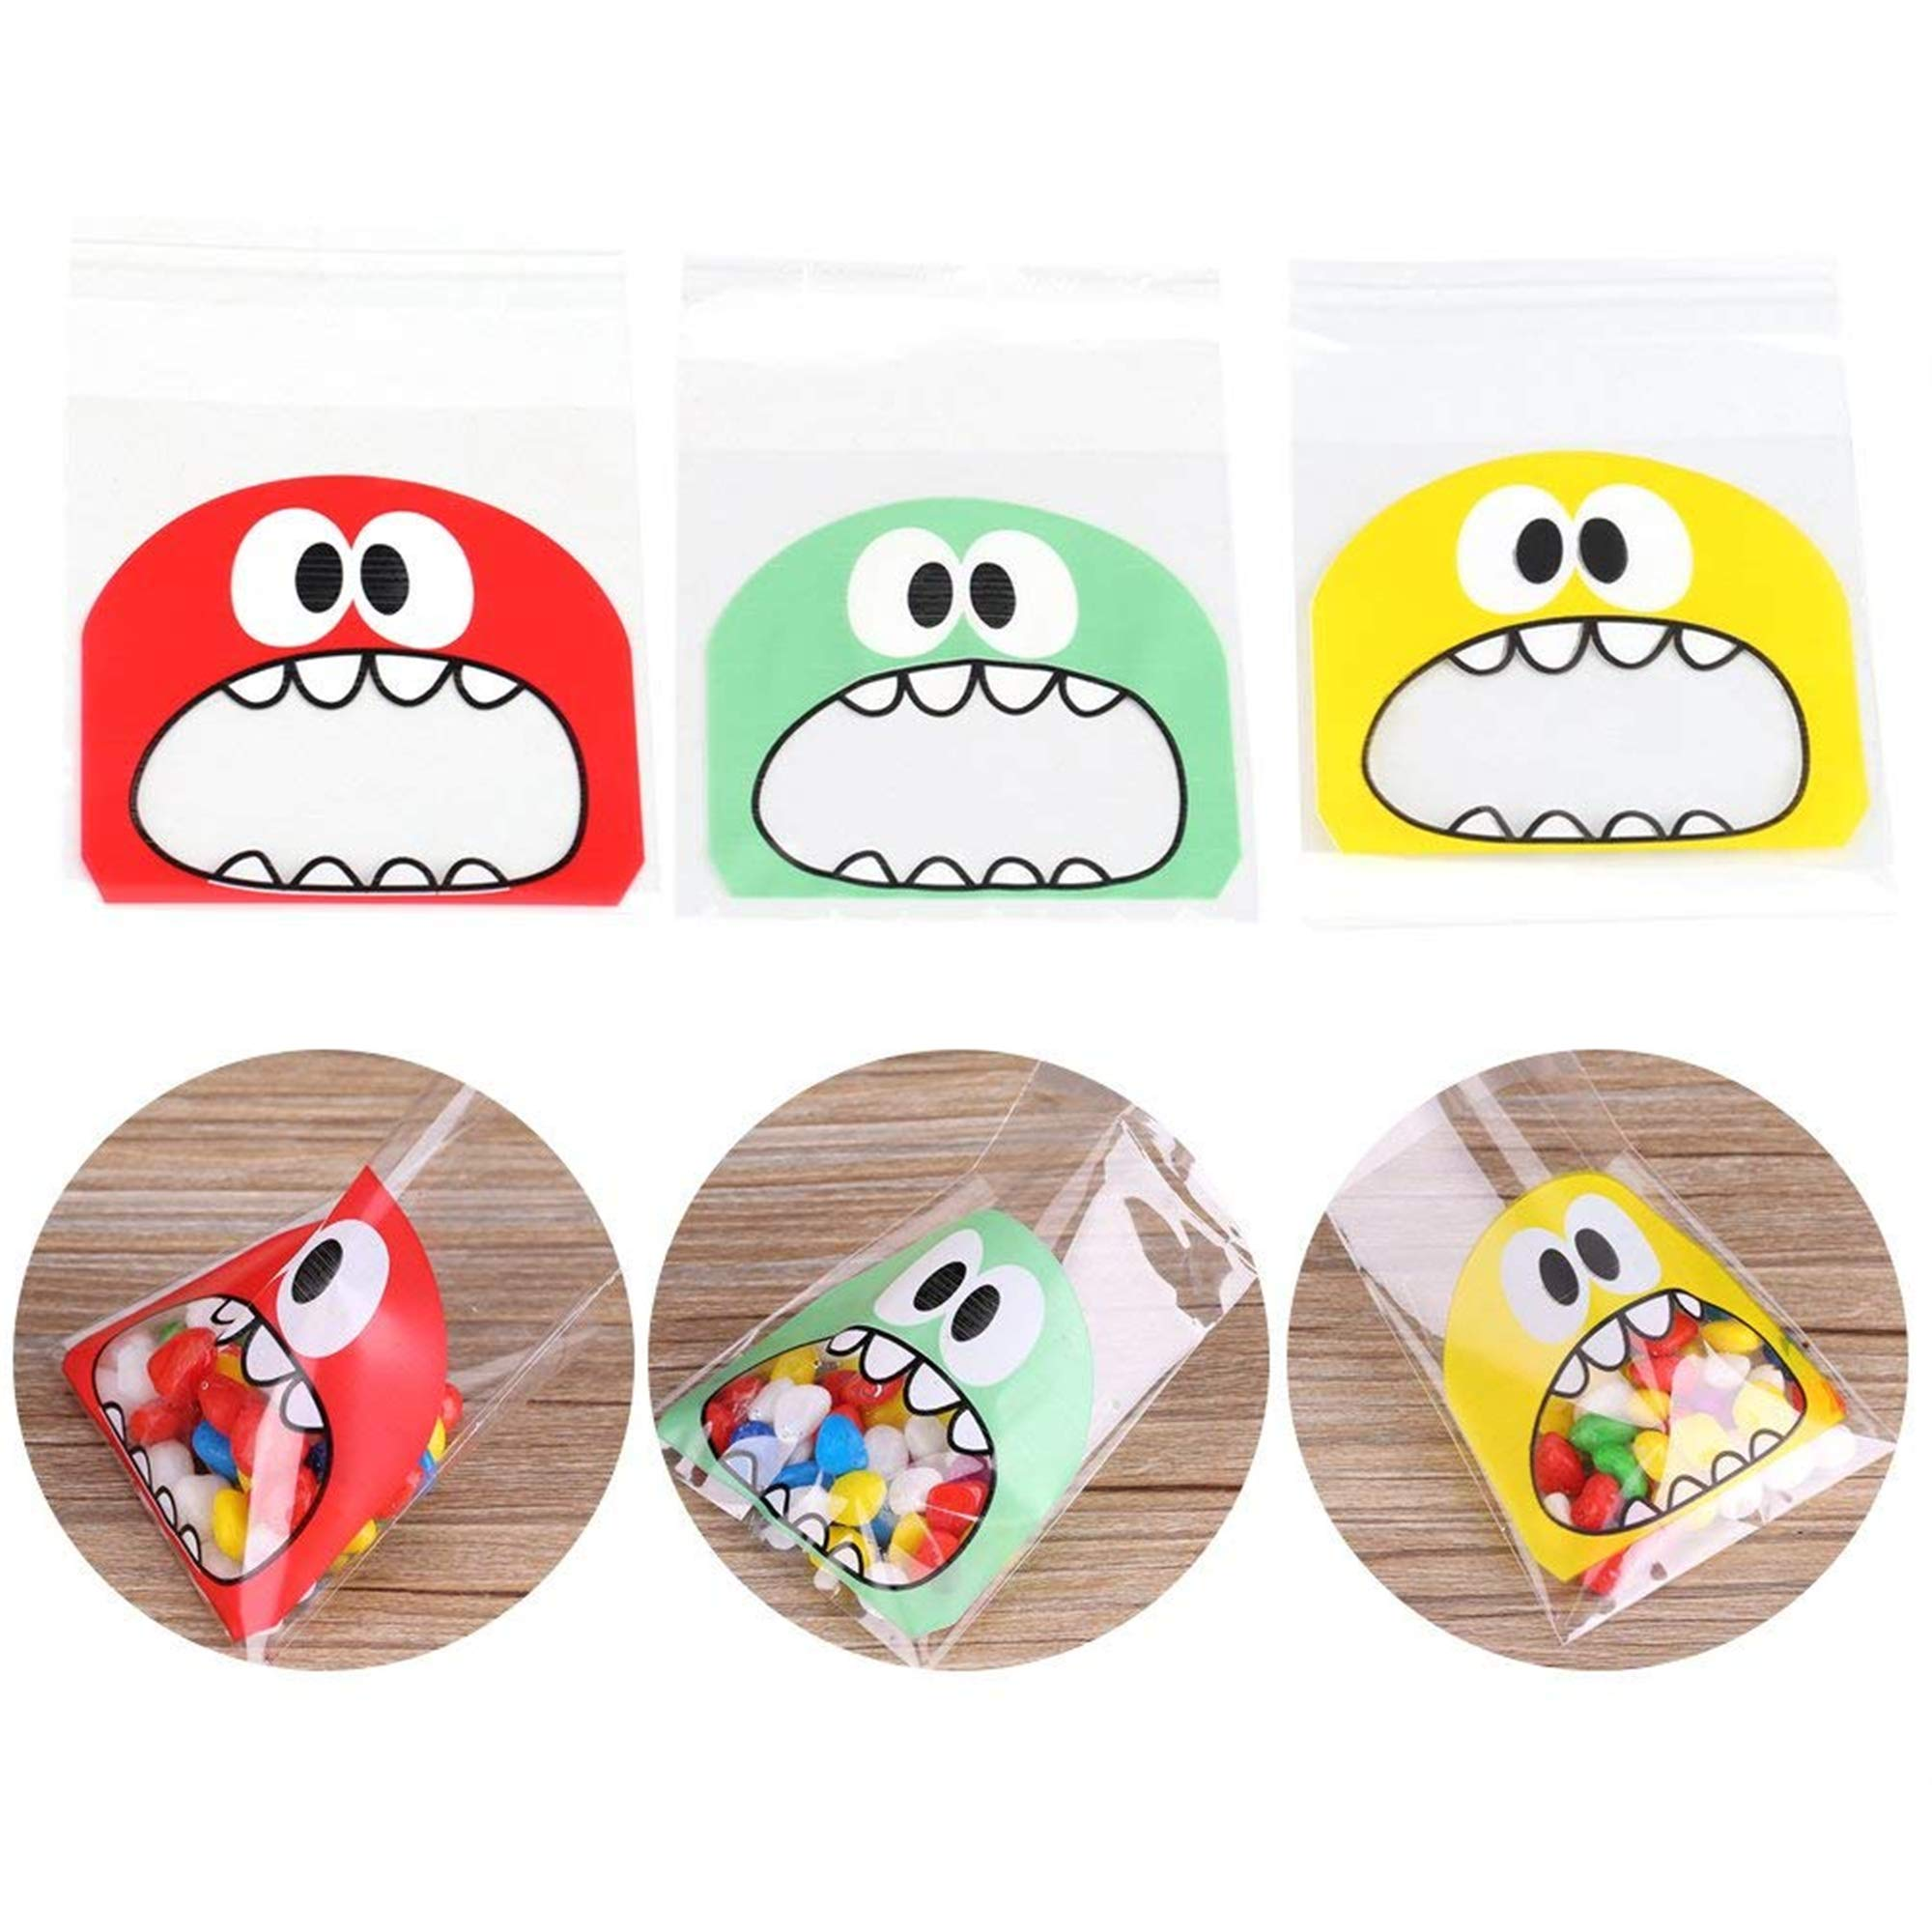 Wootkey Candy Bags 300 pcs 4'' Big Mouth Monster Self Adhesive OPP Cookie Bakery Decorating bags Biscuit Roasting Treat Gift DIY Plastic Bag